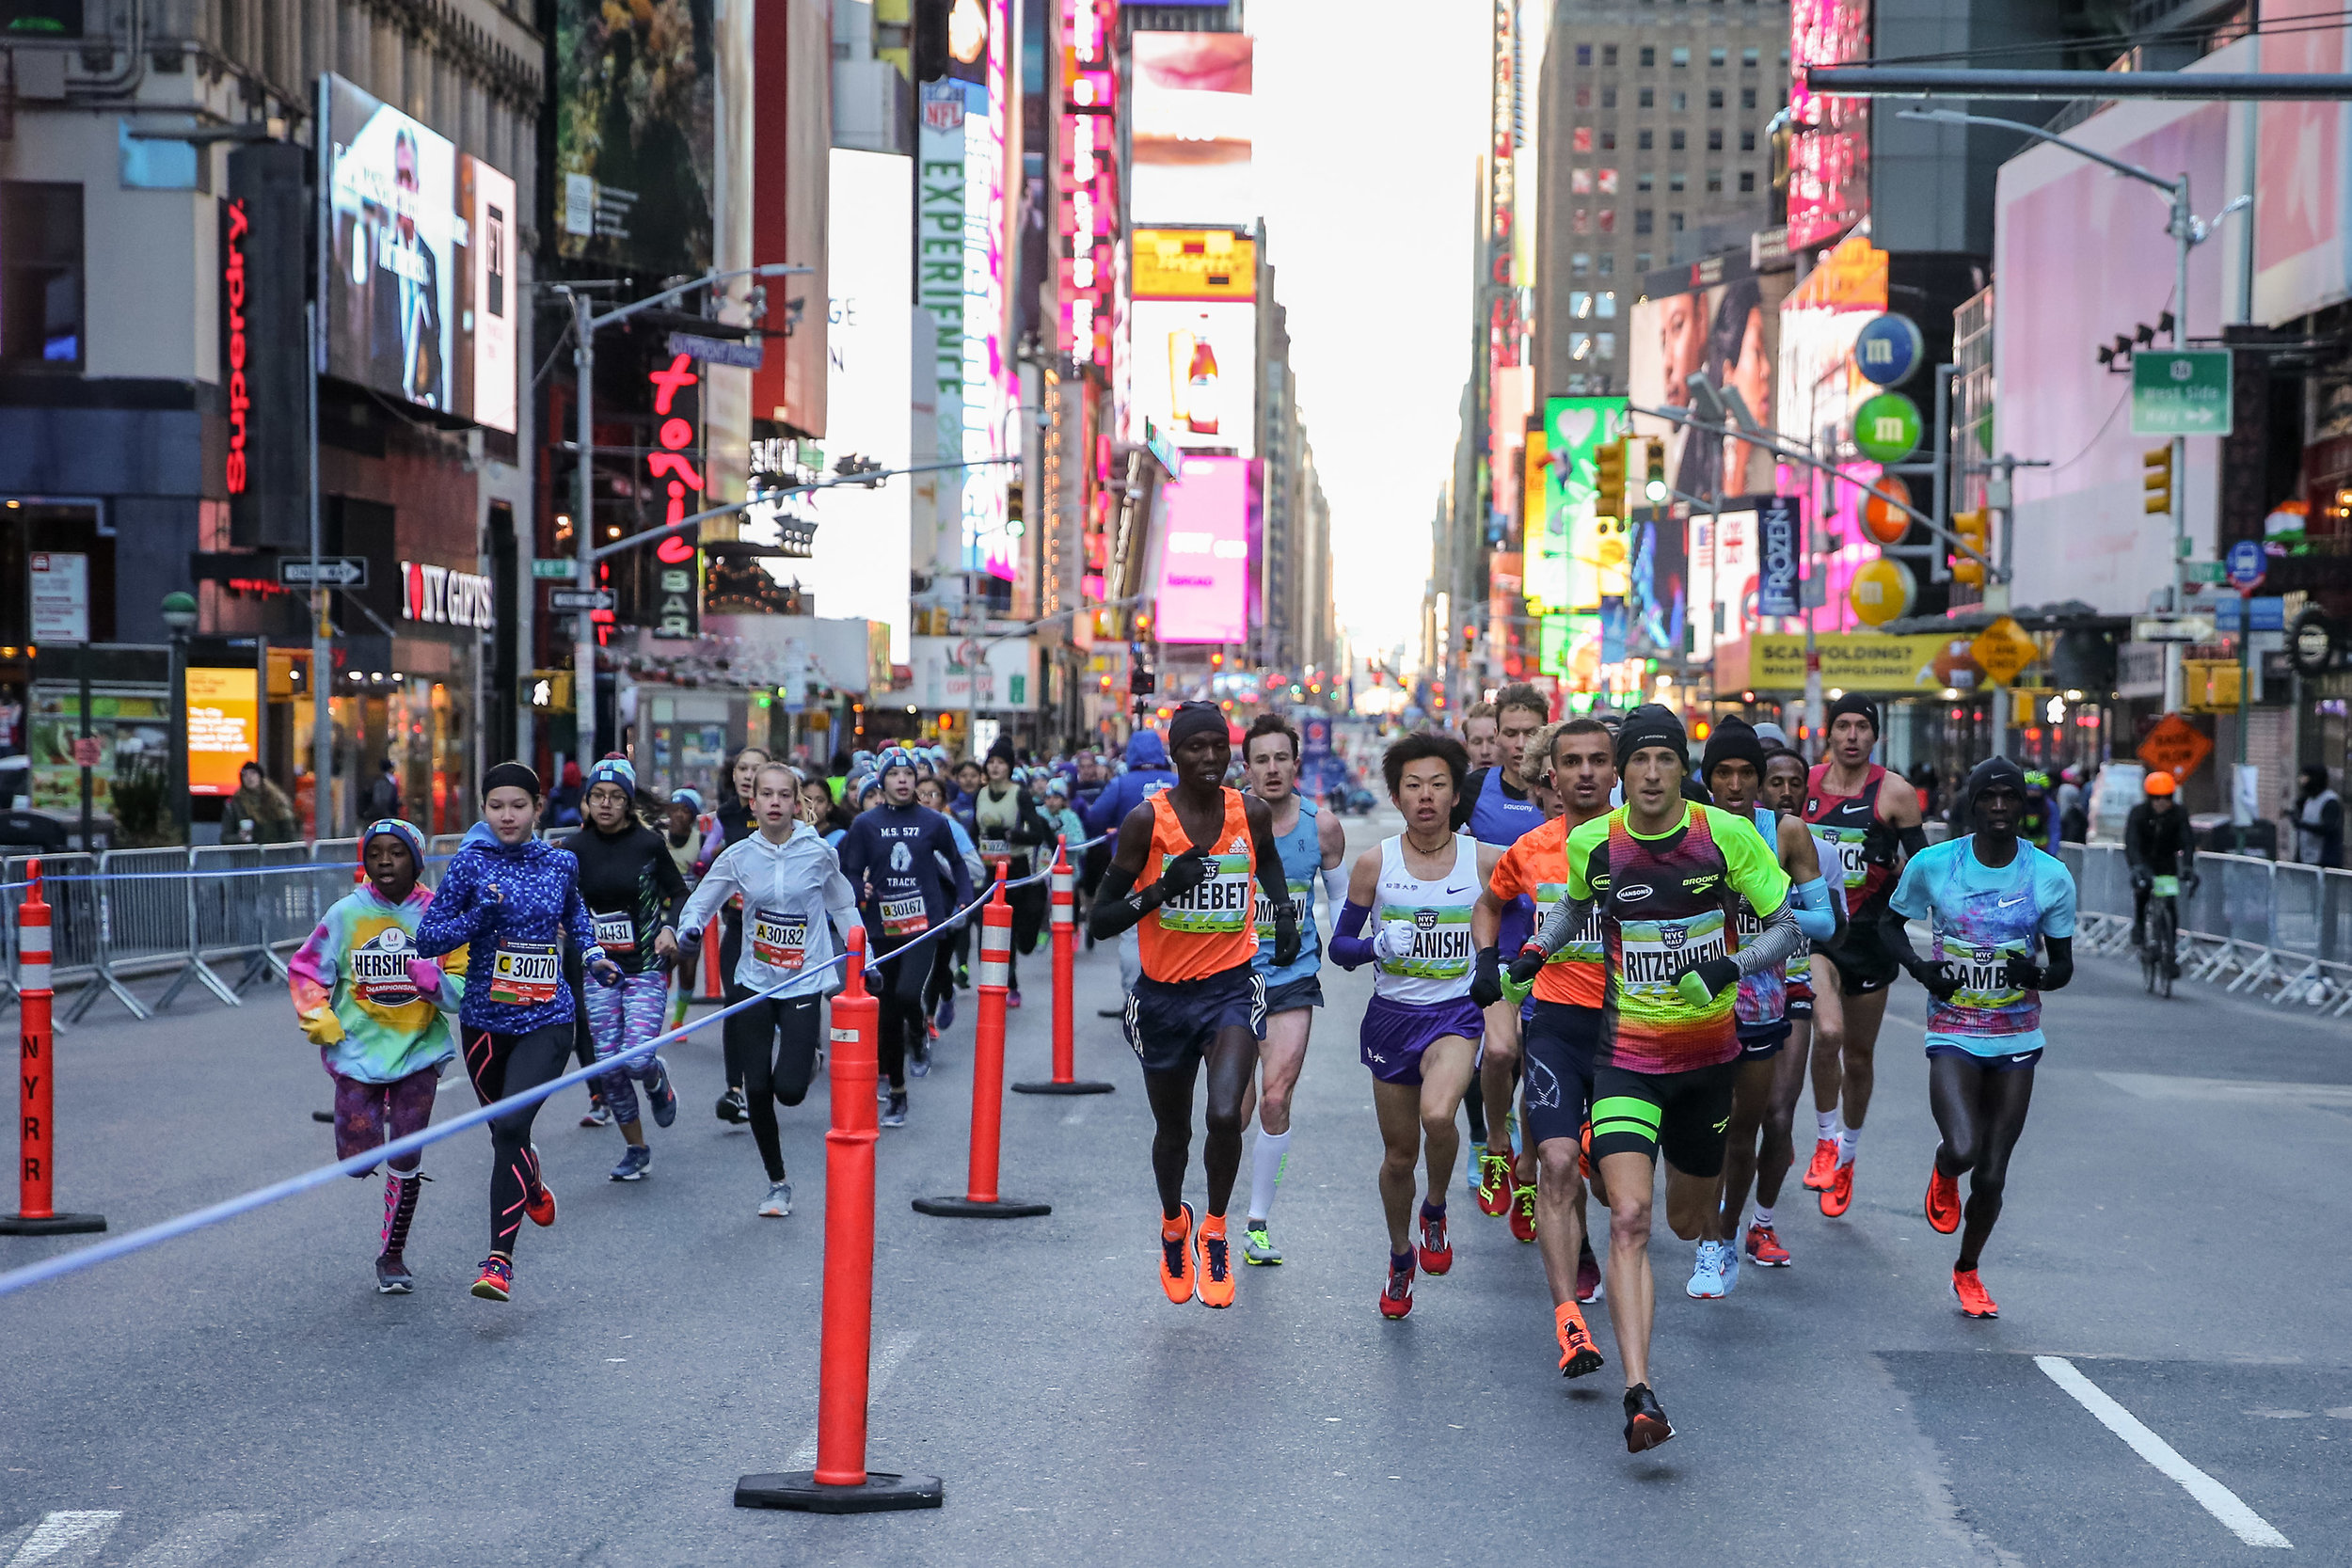 NYCH18_LeadMen_YouthRace_TimesSquare3.jpg